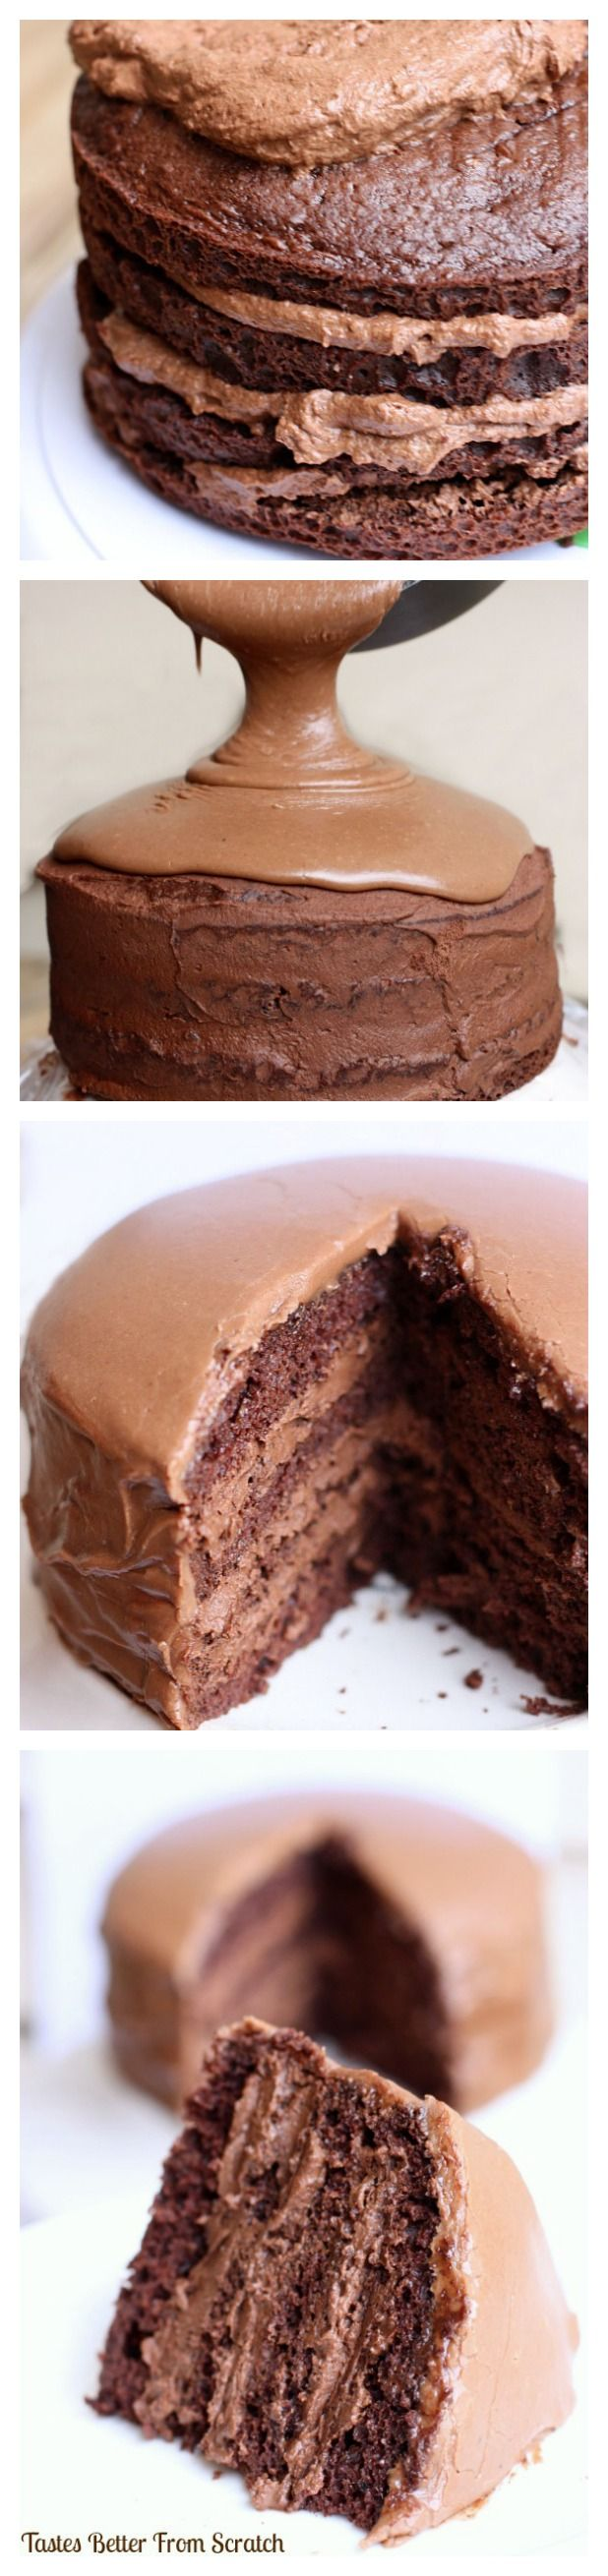 The BEST Chocolate Cake with Chocolate Mousse Filling! My favorite chocolate cake recipe with dark choc mousse fillling and warm frosting poured on top! AMAZING! Recipe from TastesBetterFromScratch.com: